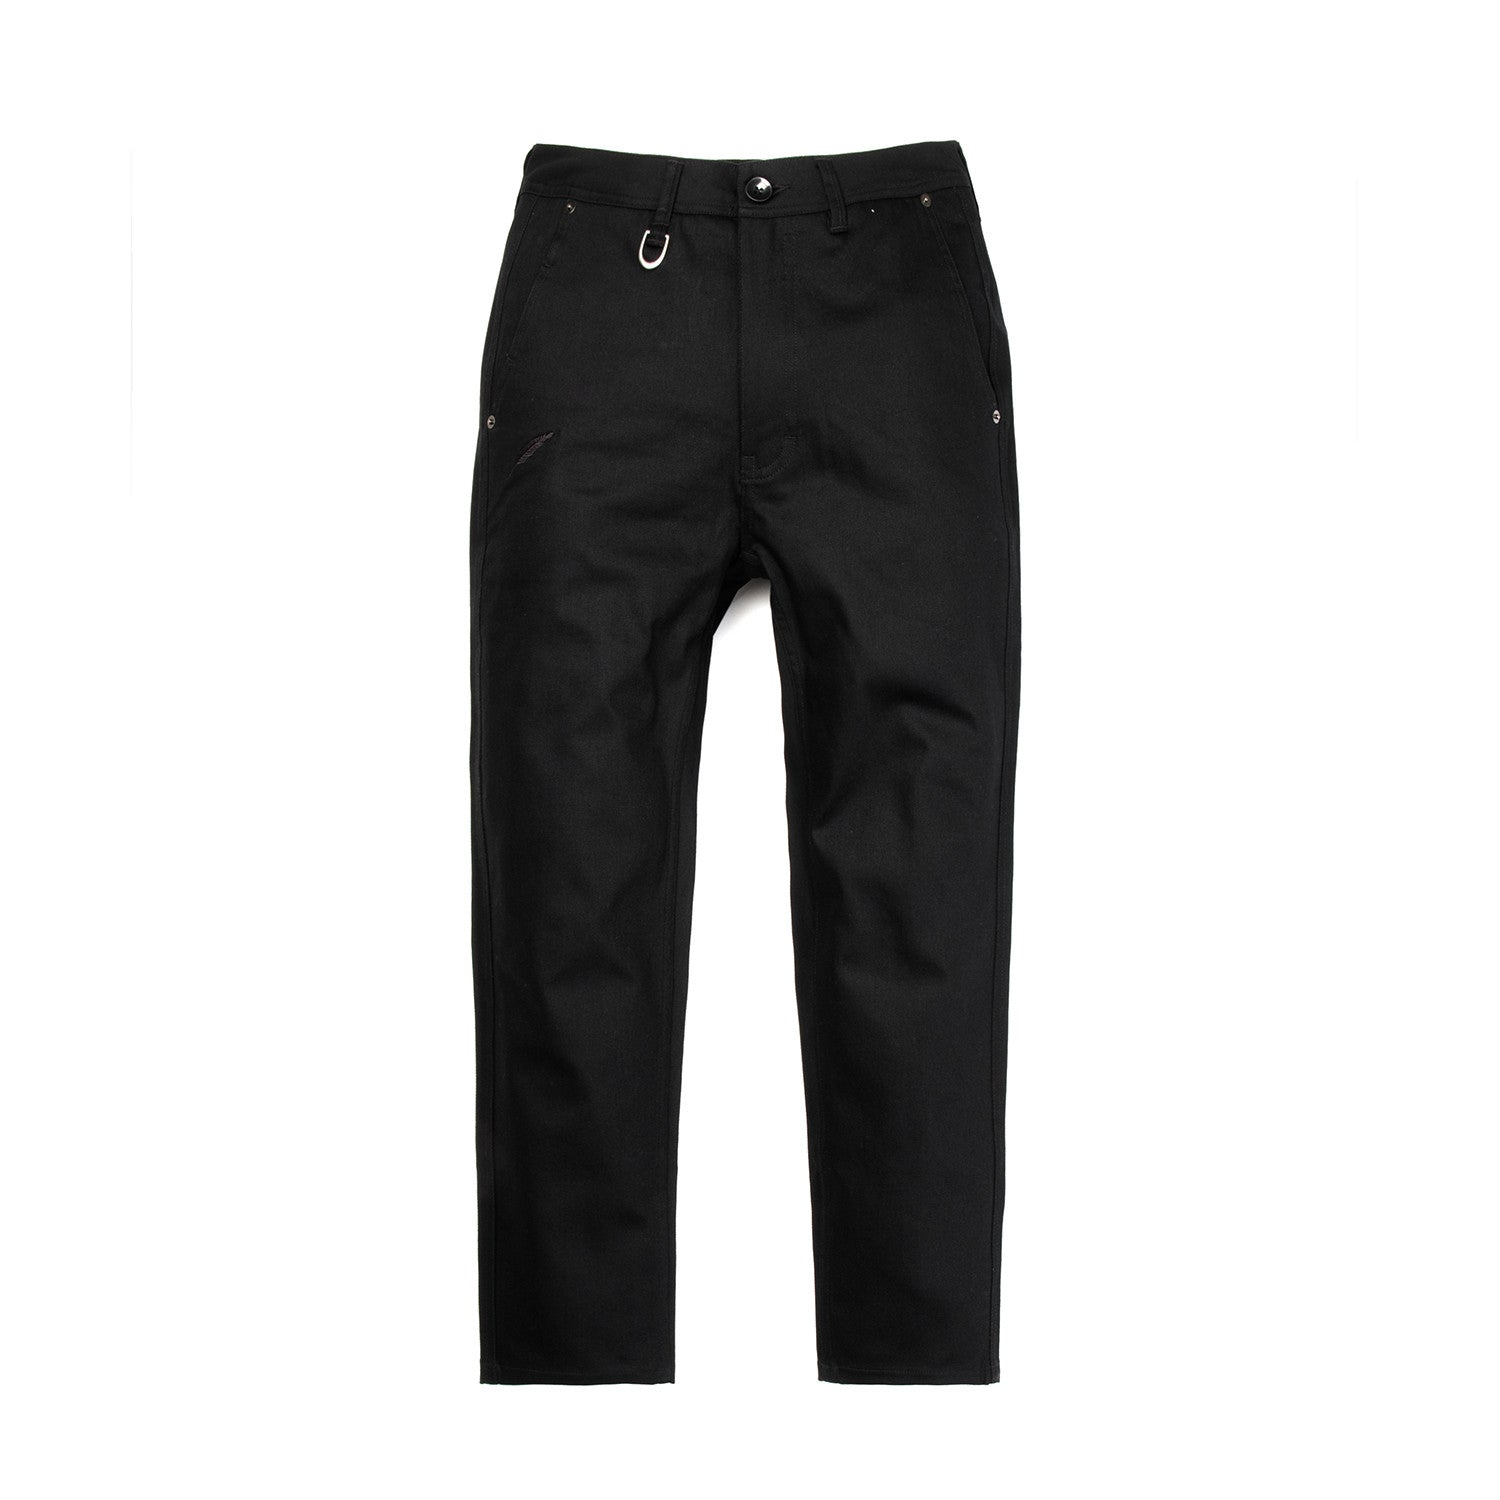 Publish 'Ankle' Pant Black